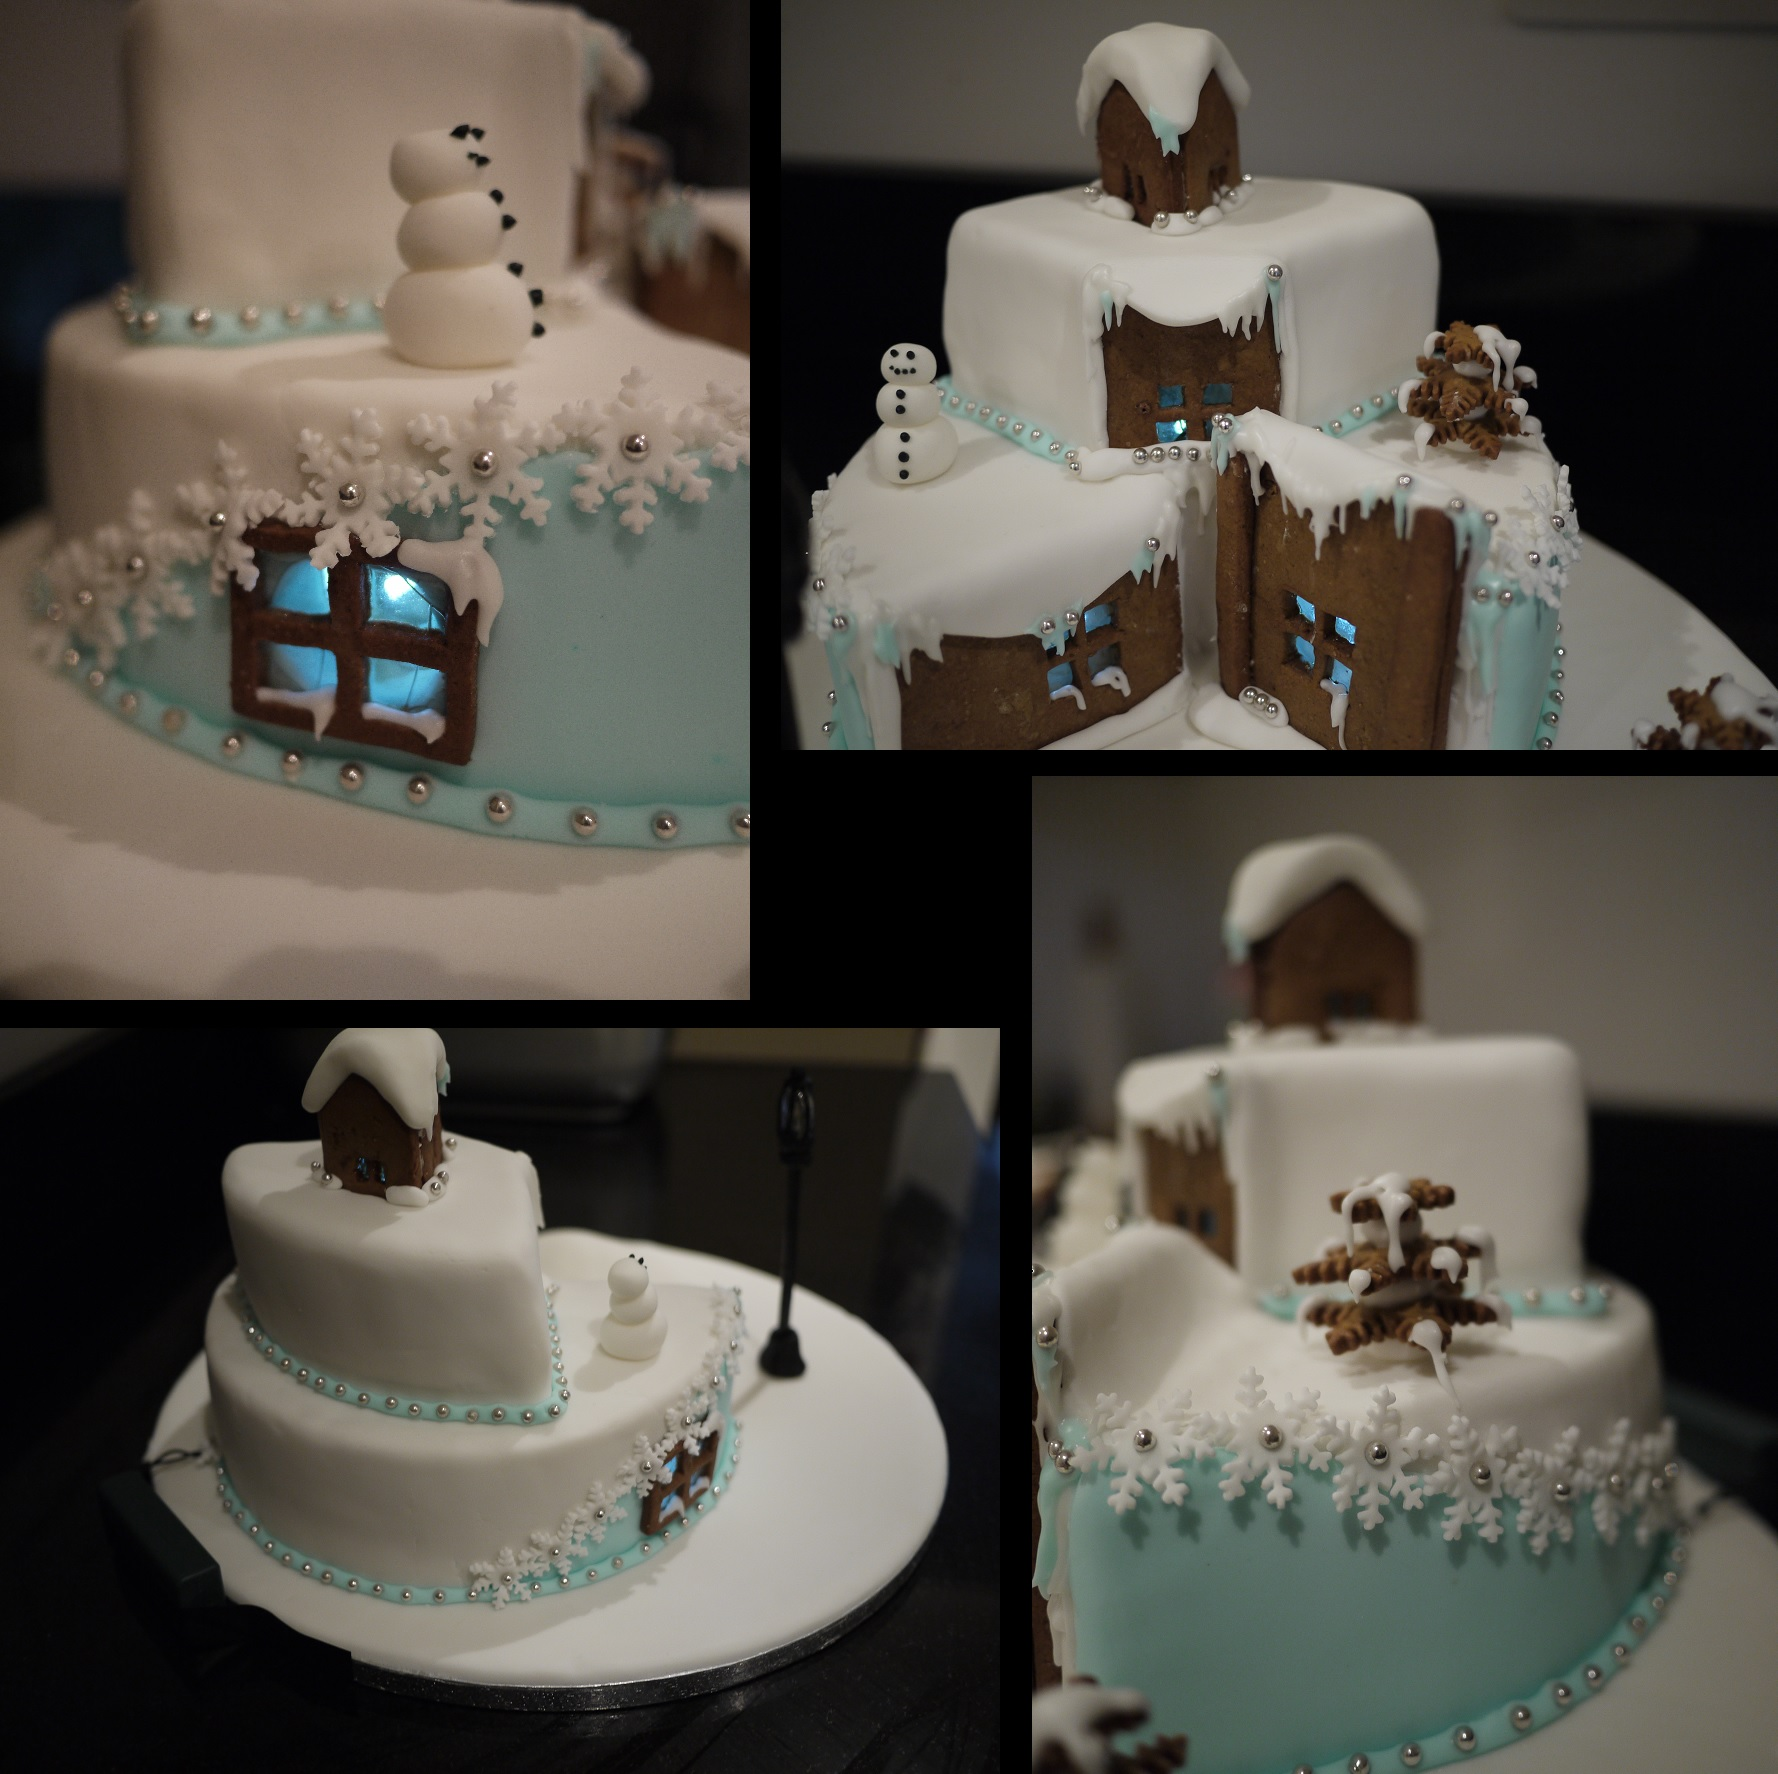 I Began To Put The Finishing Touches To The Cake Using Various Bits Of Fondant Fondant Snowflakes Royal Icing And Silver Balls As In The Pictures